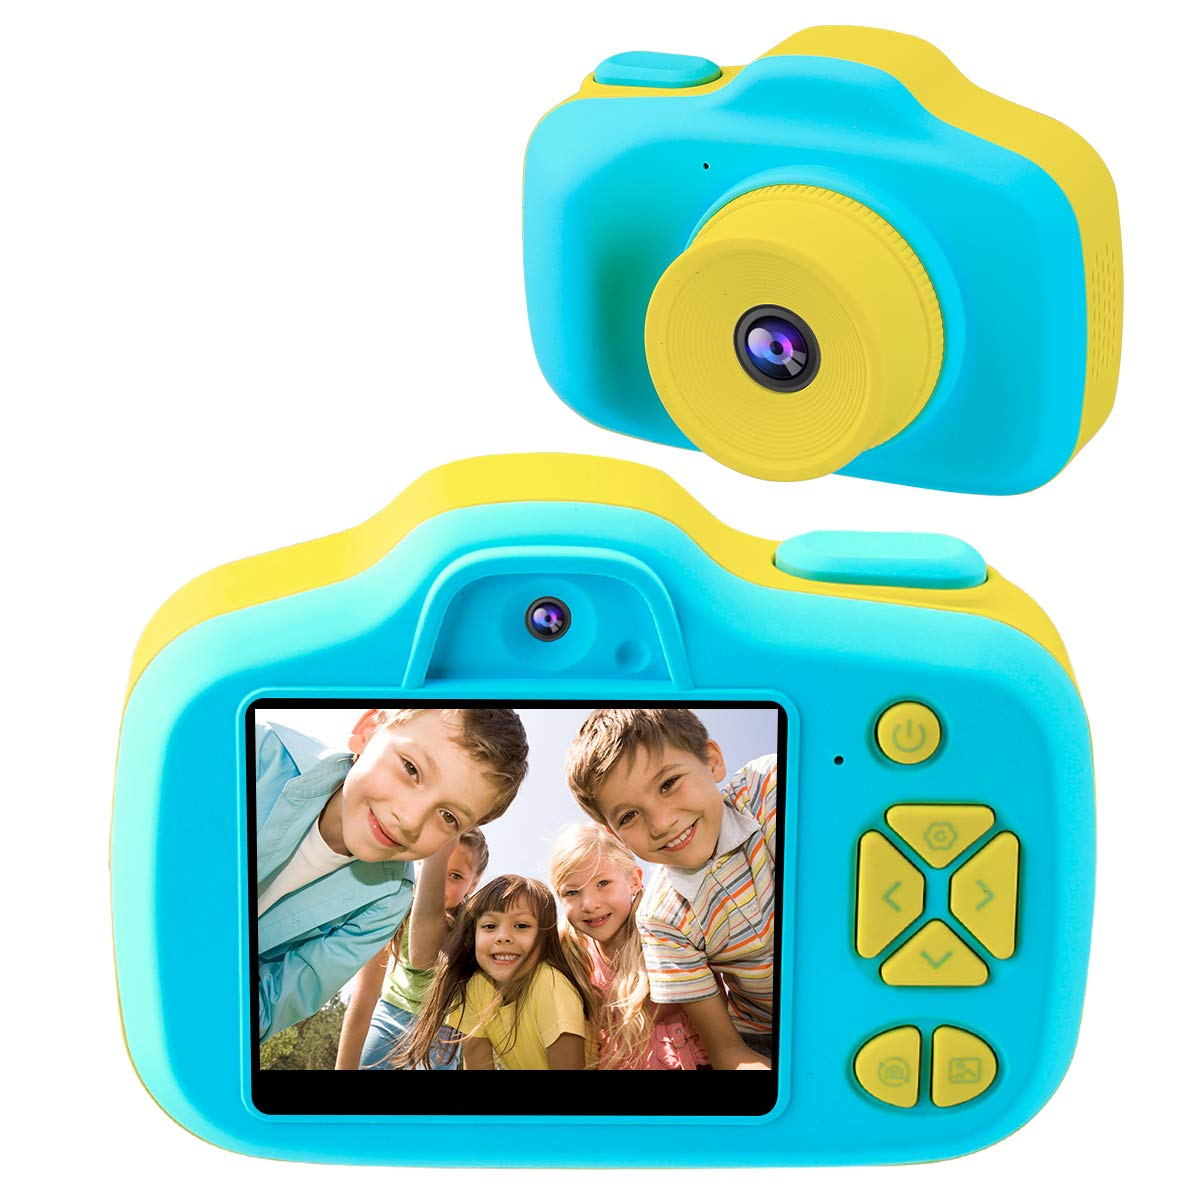 Joytrip Kids Camera Gifts,Front and Rear Selfie Children Camcorder,2.3 Inches Screen,for Boys,Blue